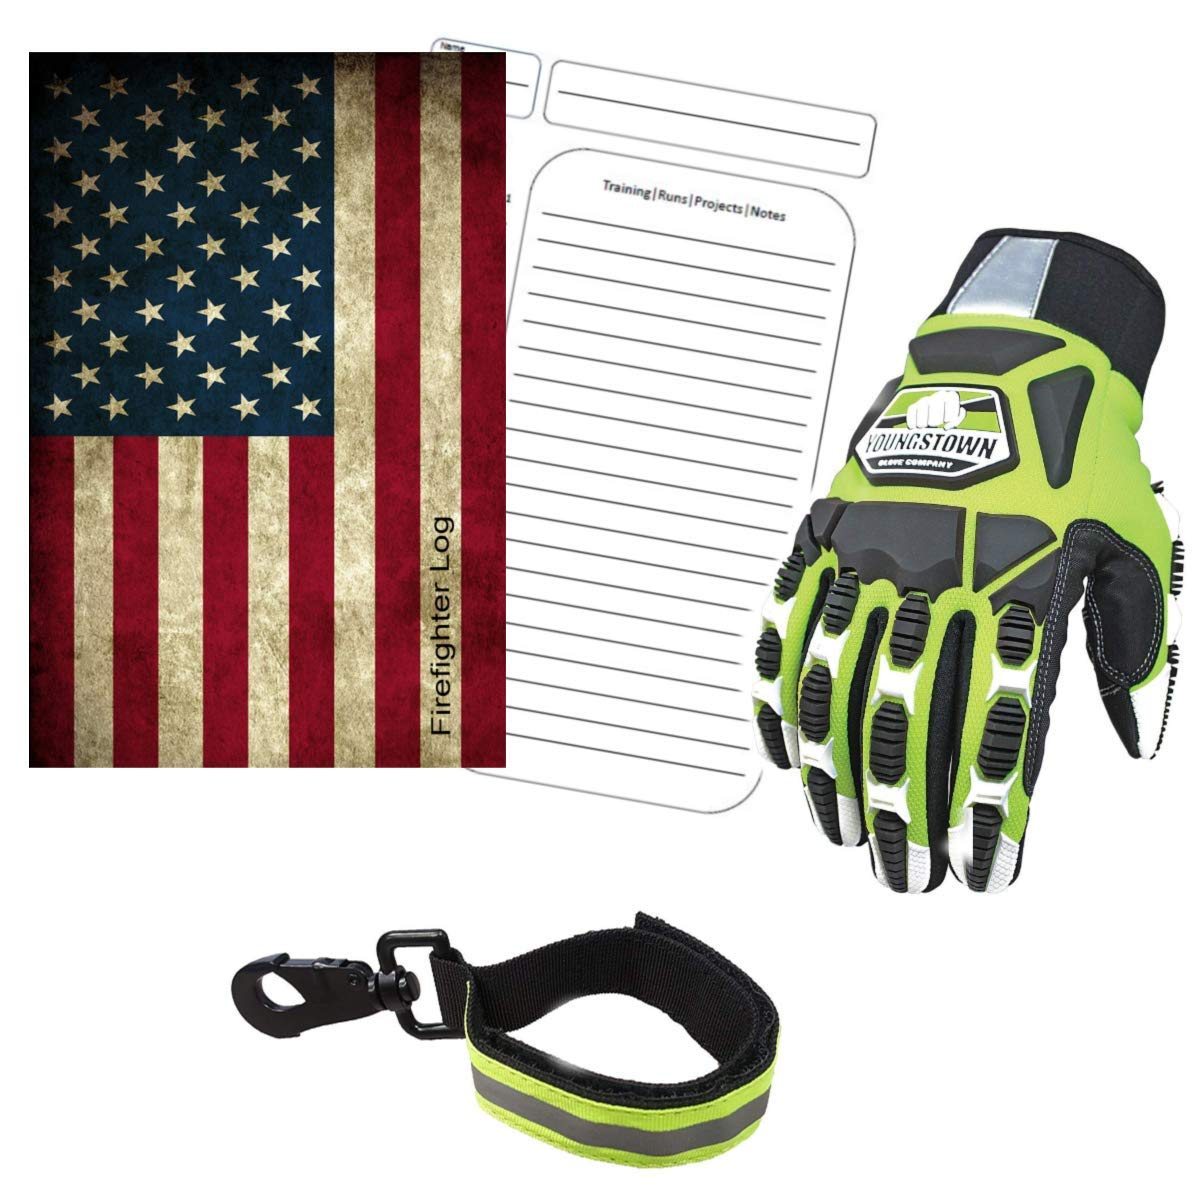 Cut Resistant Gloves Bundle - 1 - Firefighter Extrication Gloves (Large) | 1 - Glove Strap (lime Green) | 1 - Firefighter Journal (Track training hours, Run activities, work, ect.)